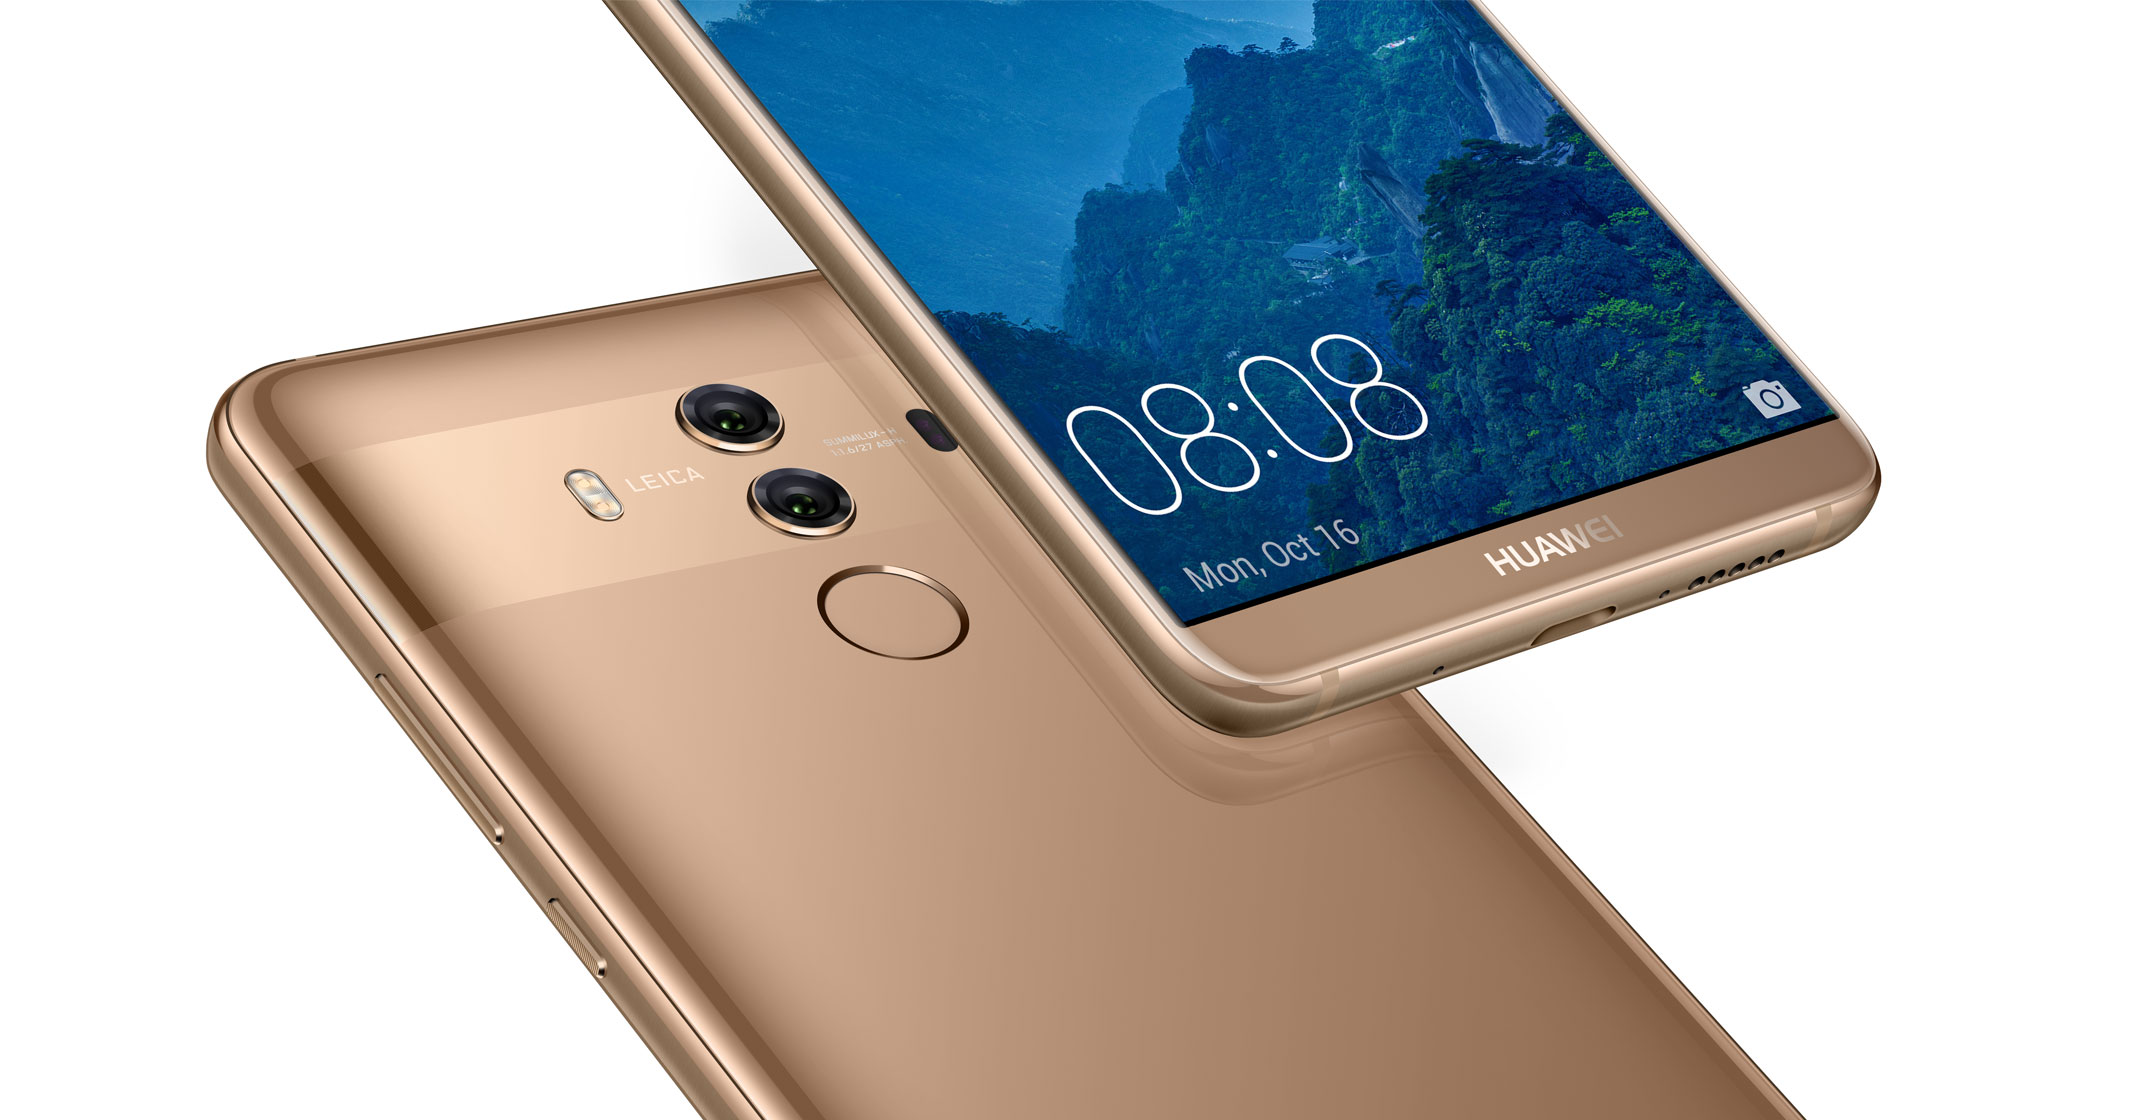 Huawei Mate 10, Mate 10 Pro With FullView Displays Launched: Price, Specifications